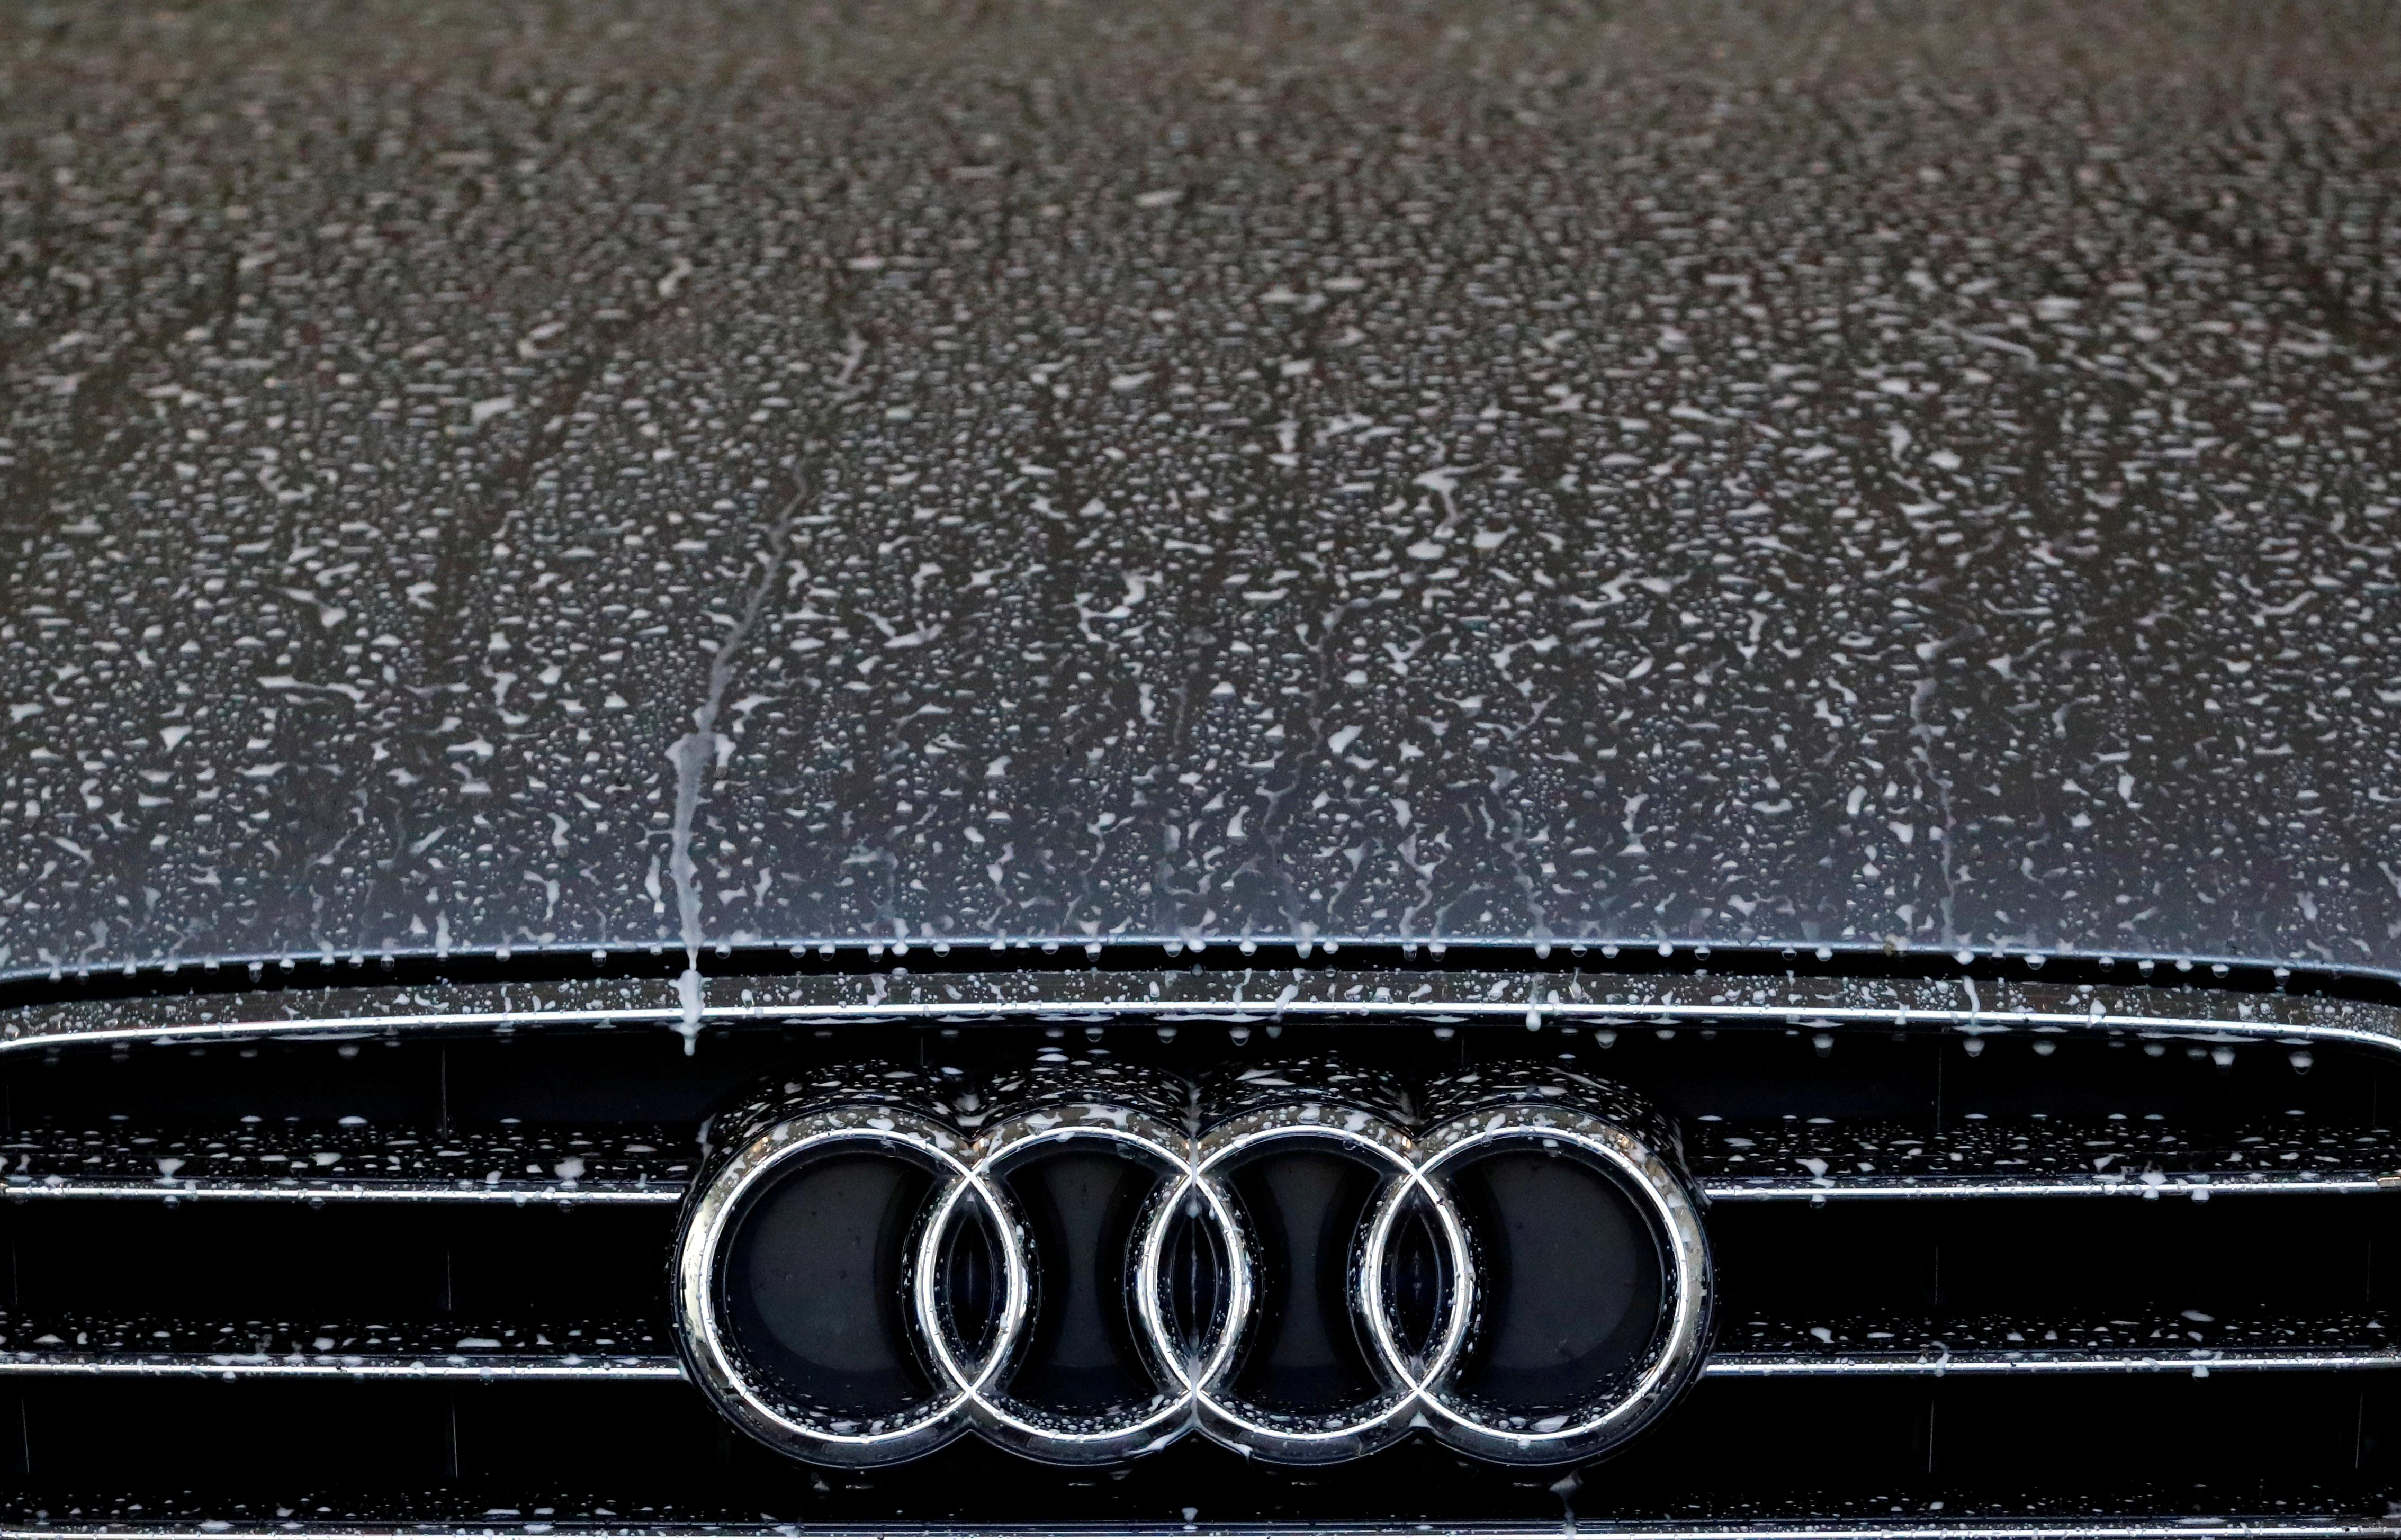 Germany's car watchdog sets Audi ultimatum to remove illegal diesel...